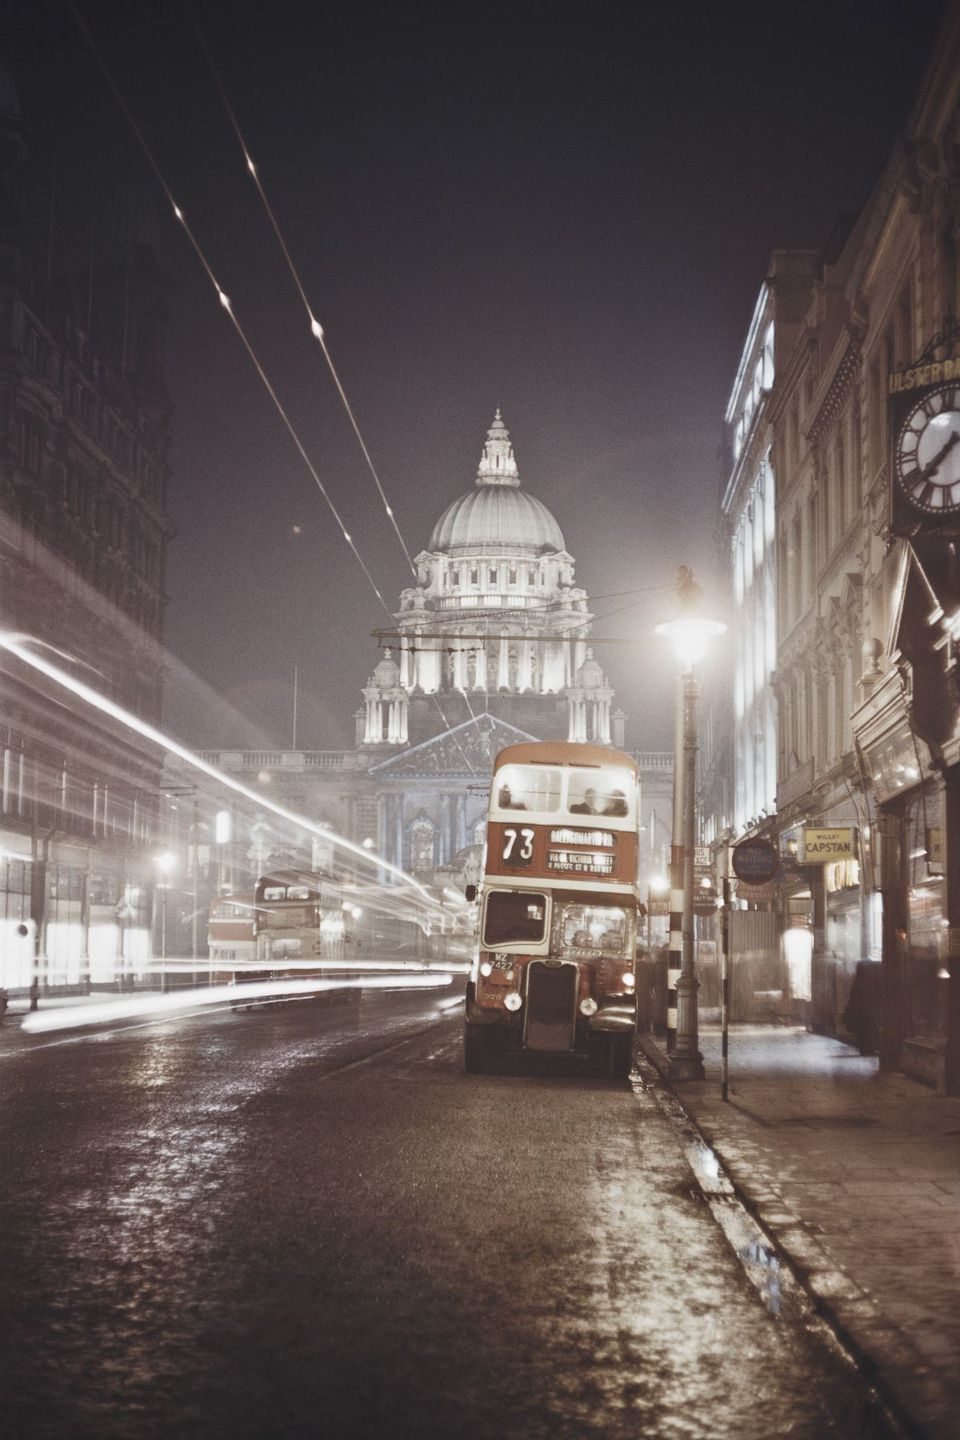 26 wonderful color photographs captured everyday life in